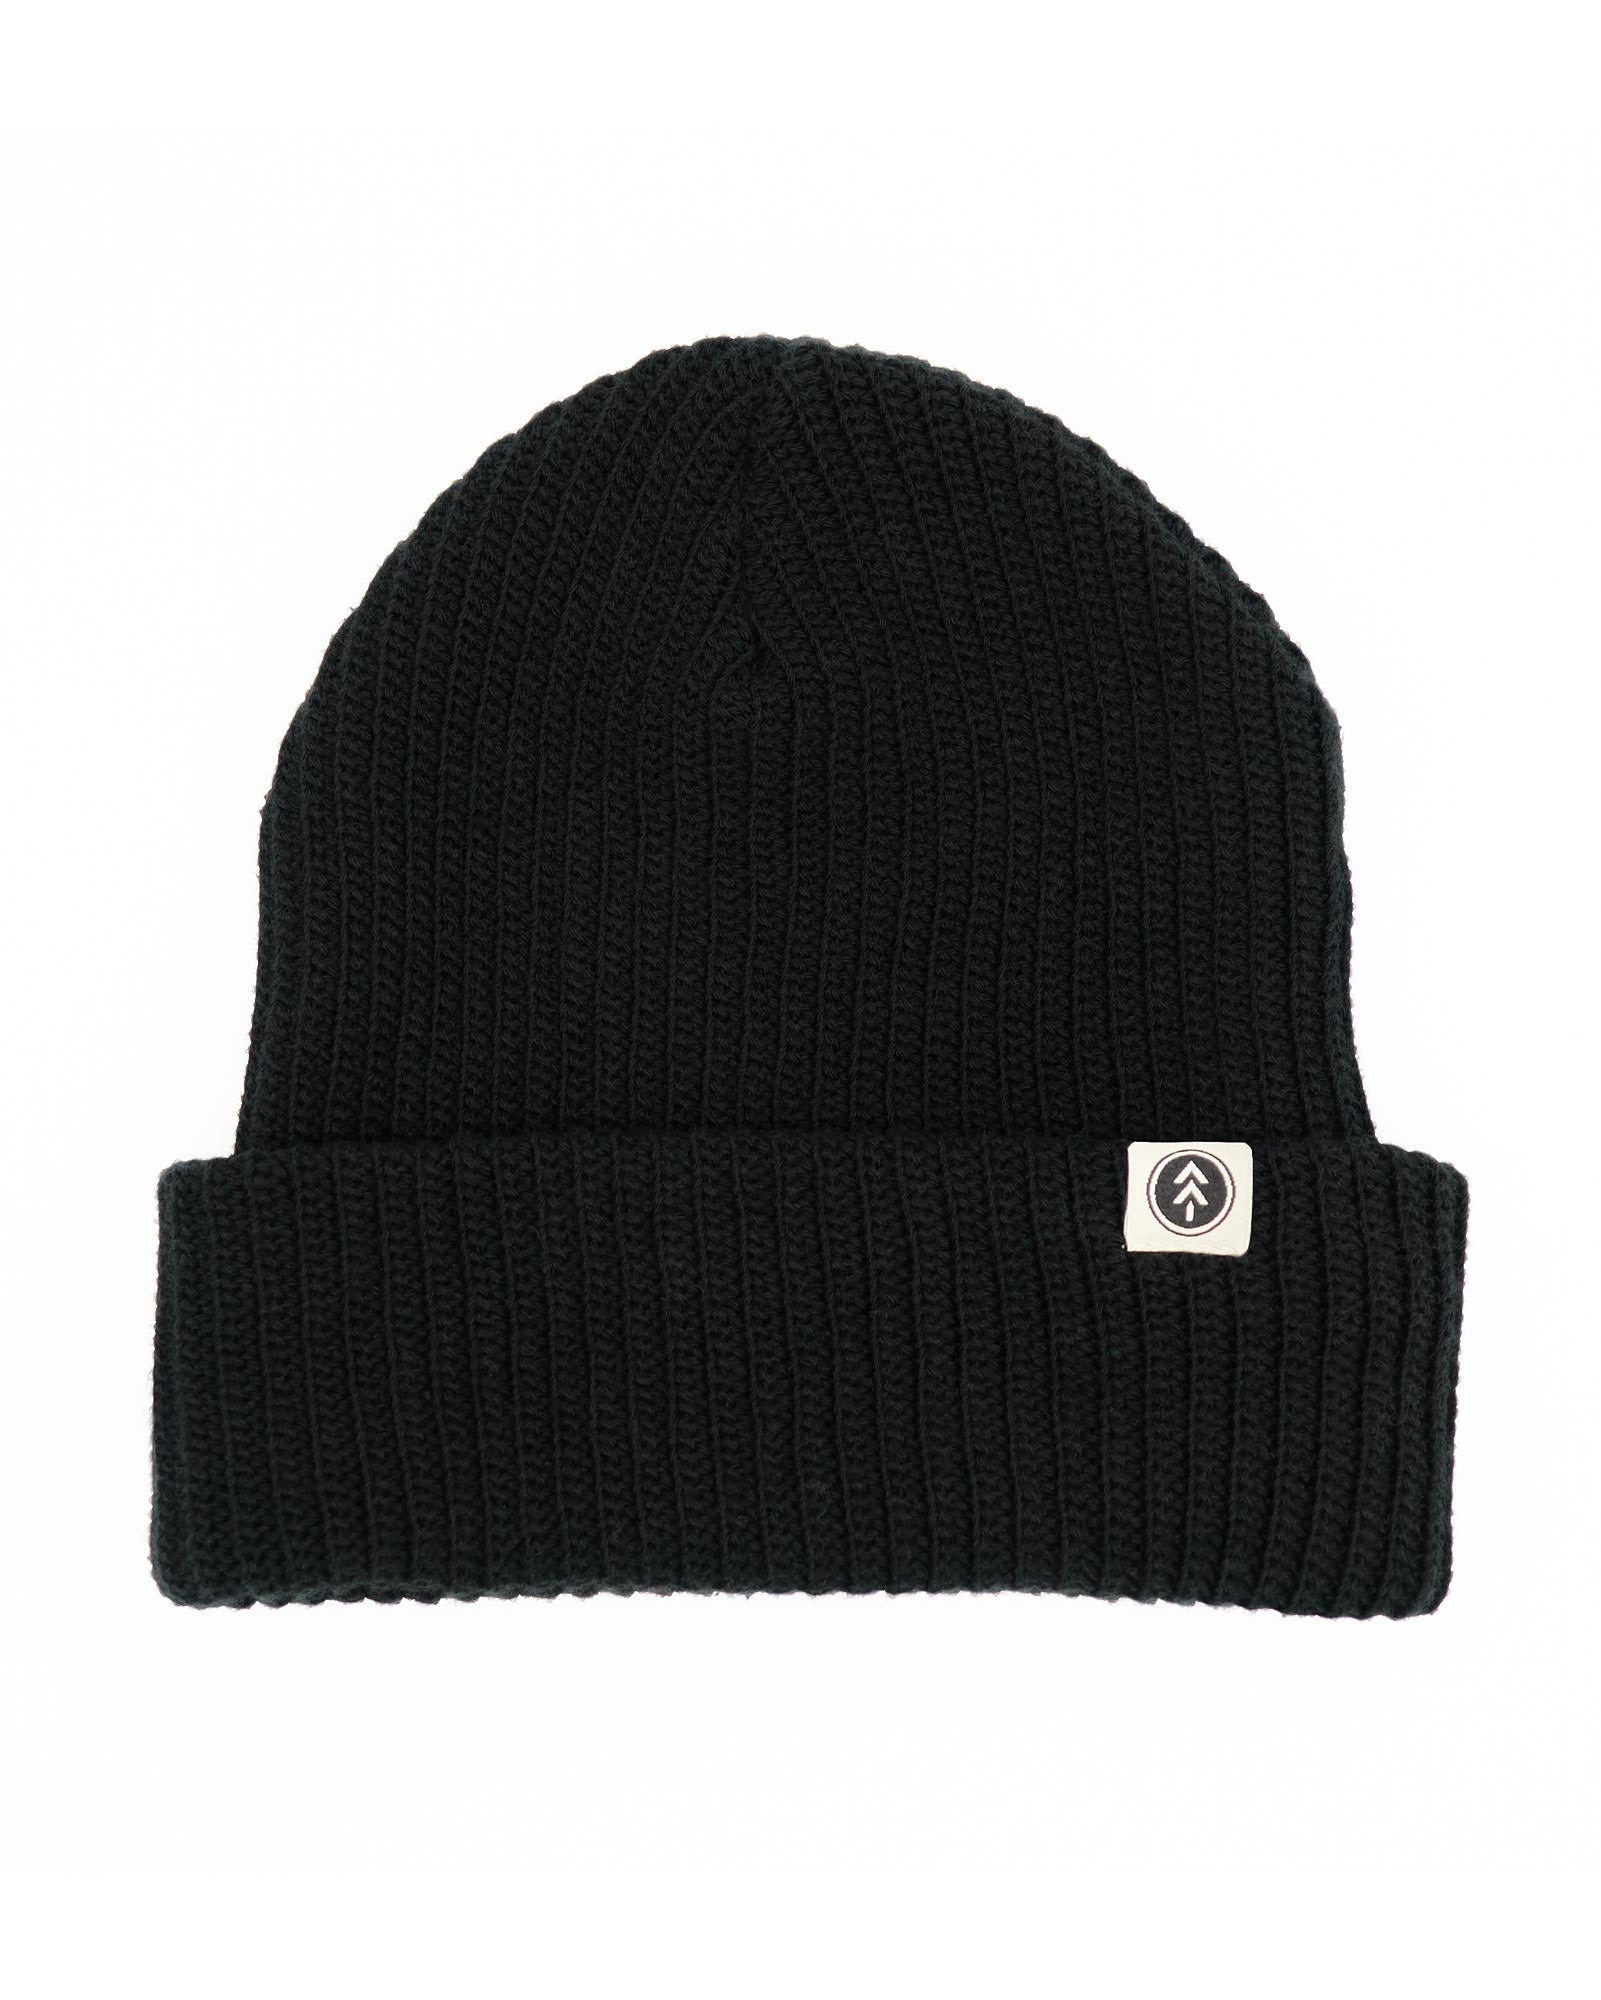 Parks Project Logo Clip Beanie | Parks Project | National Park Headwear